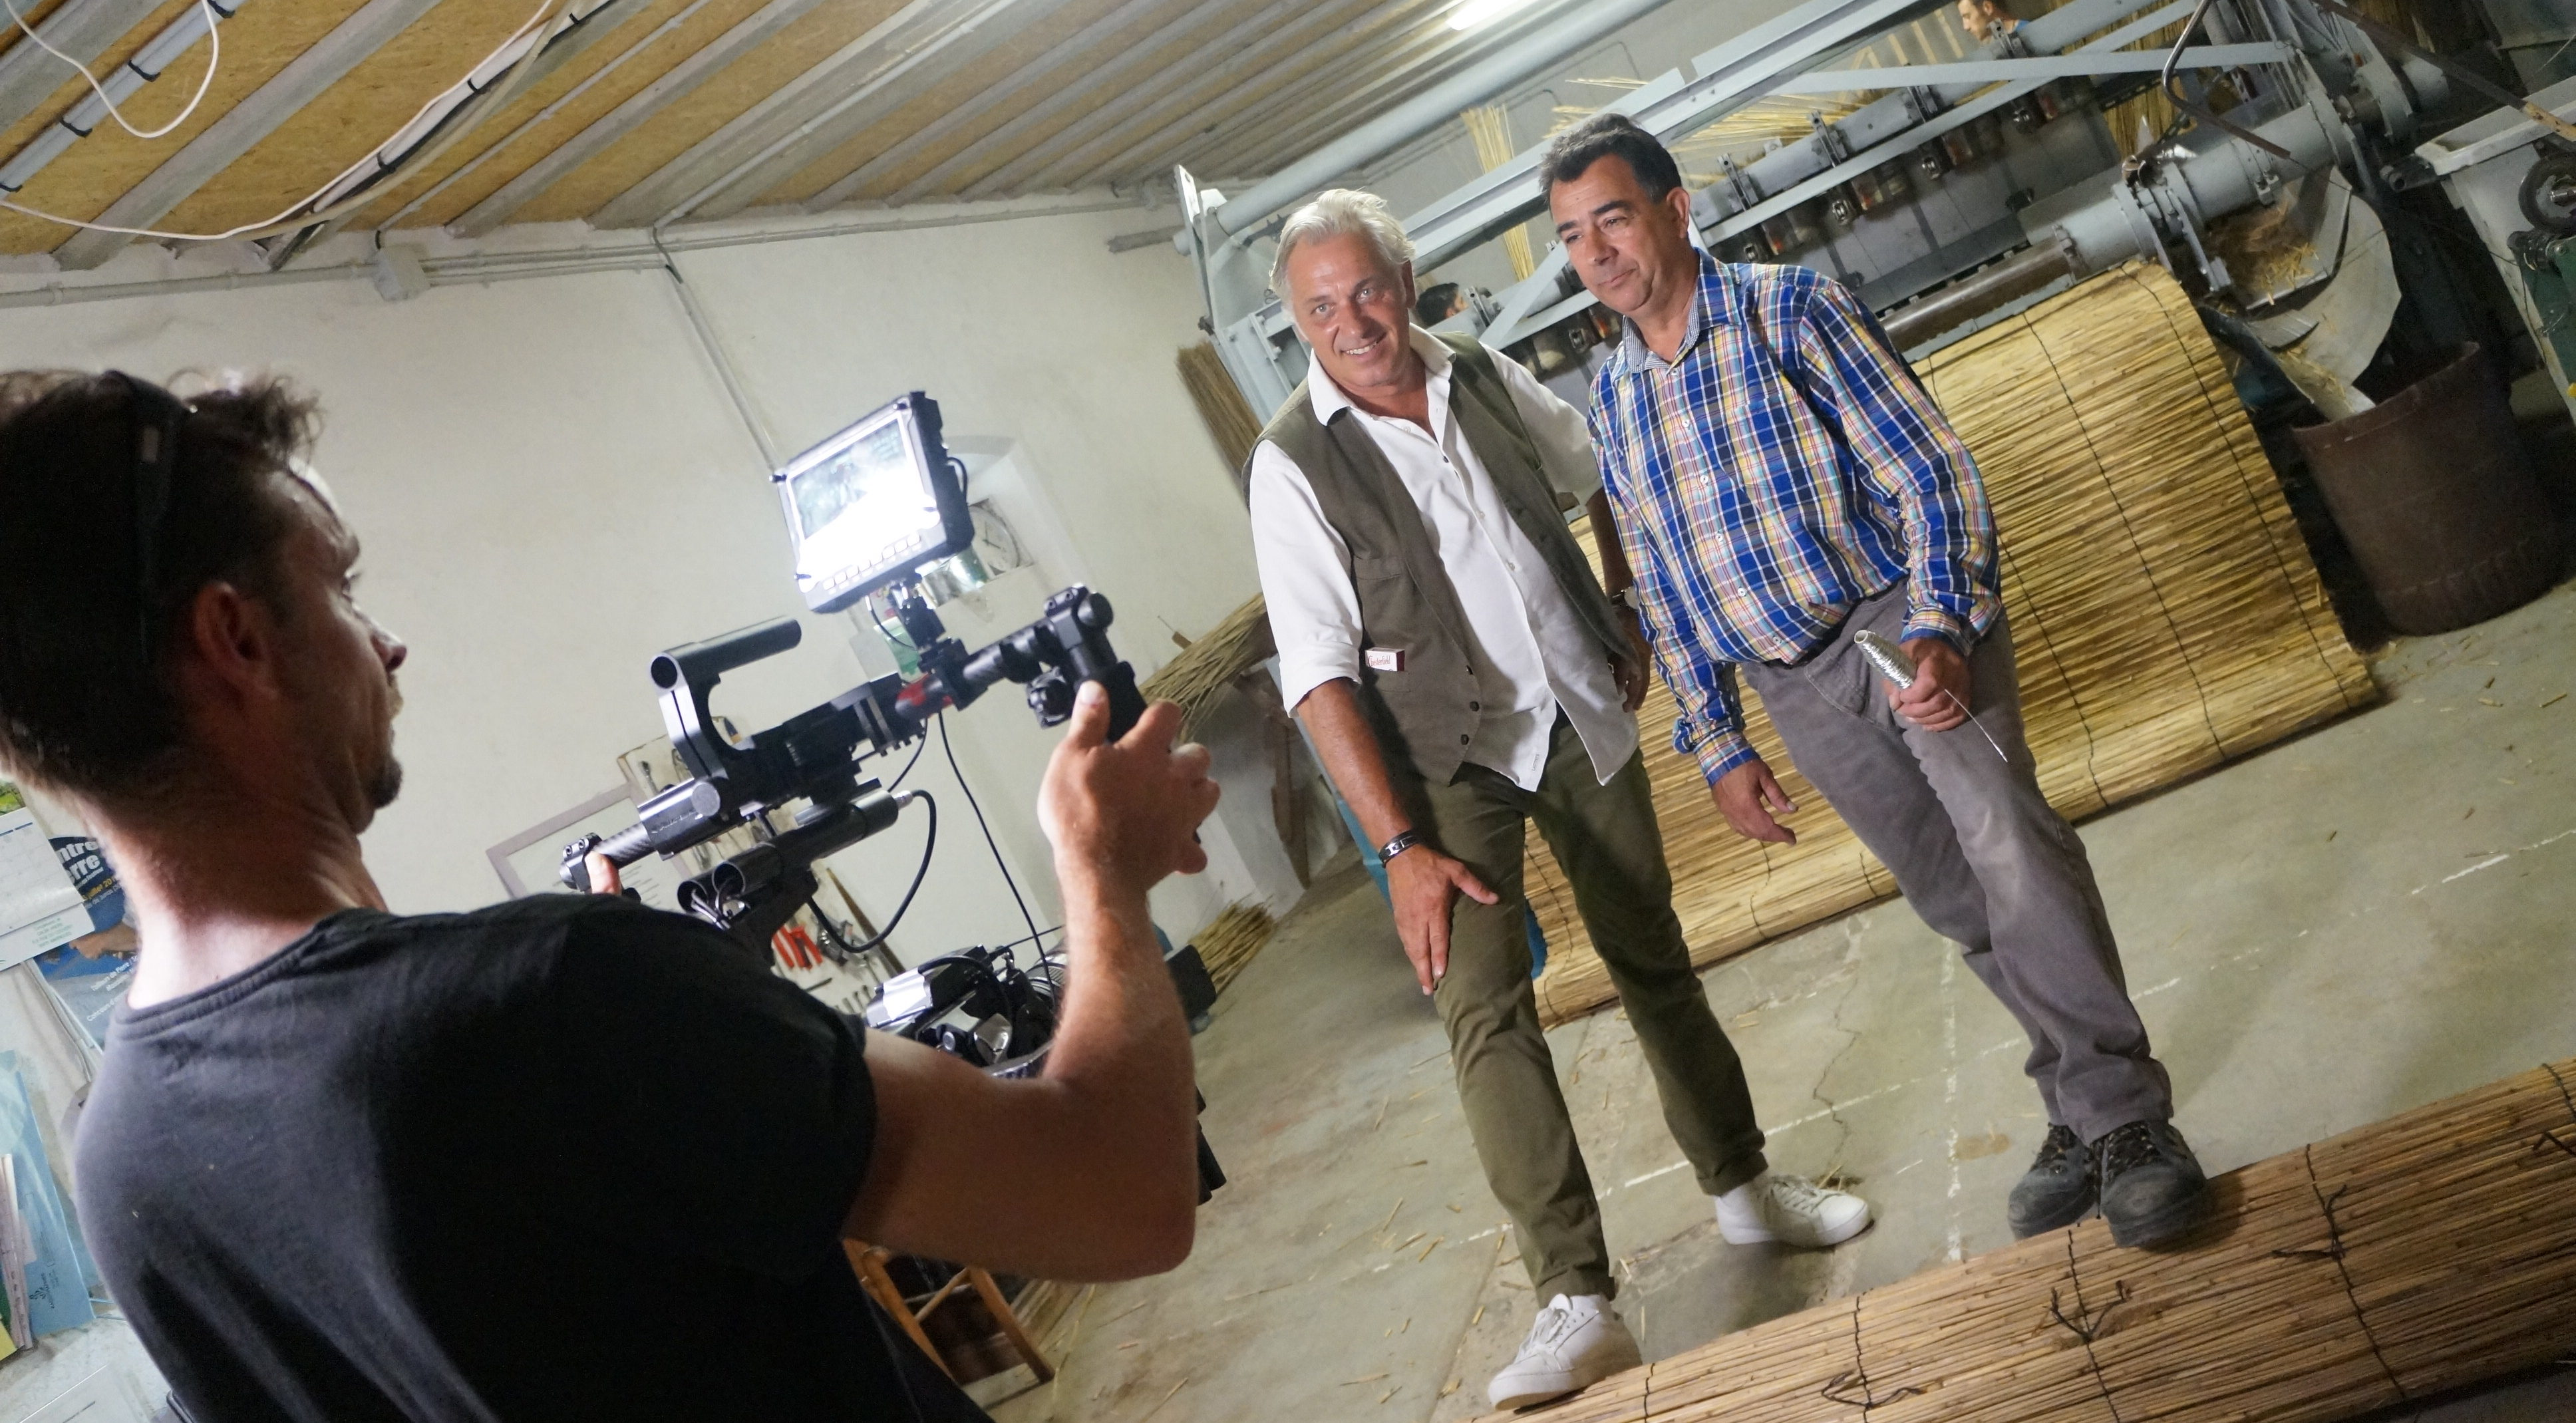 Photo of AIMARGUES L'émission La maison France 5 en tournage dans l'atelier Trésor de Camargue